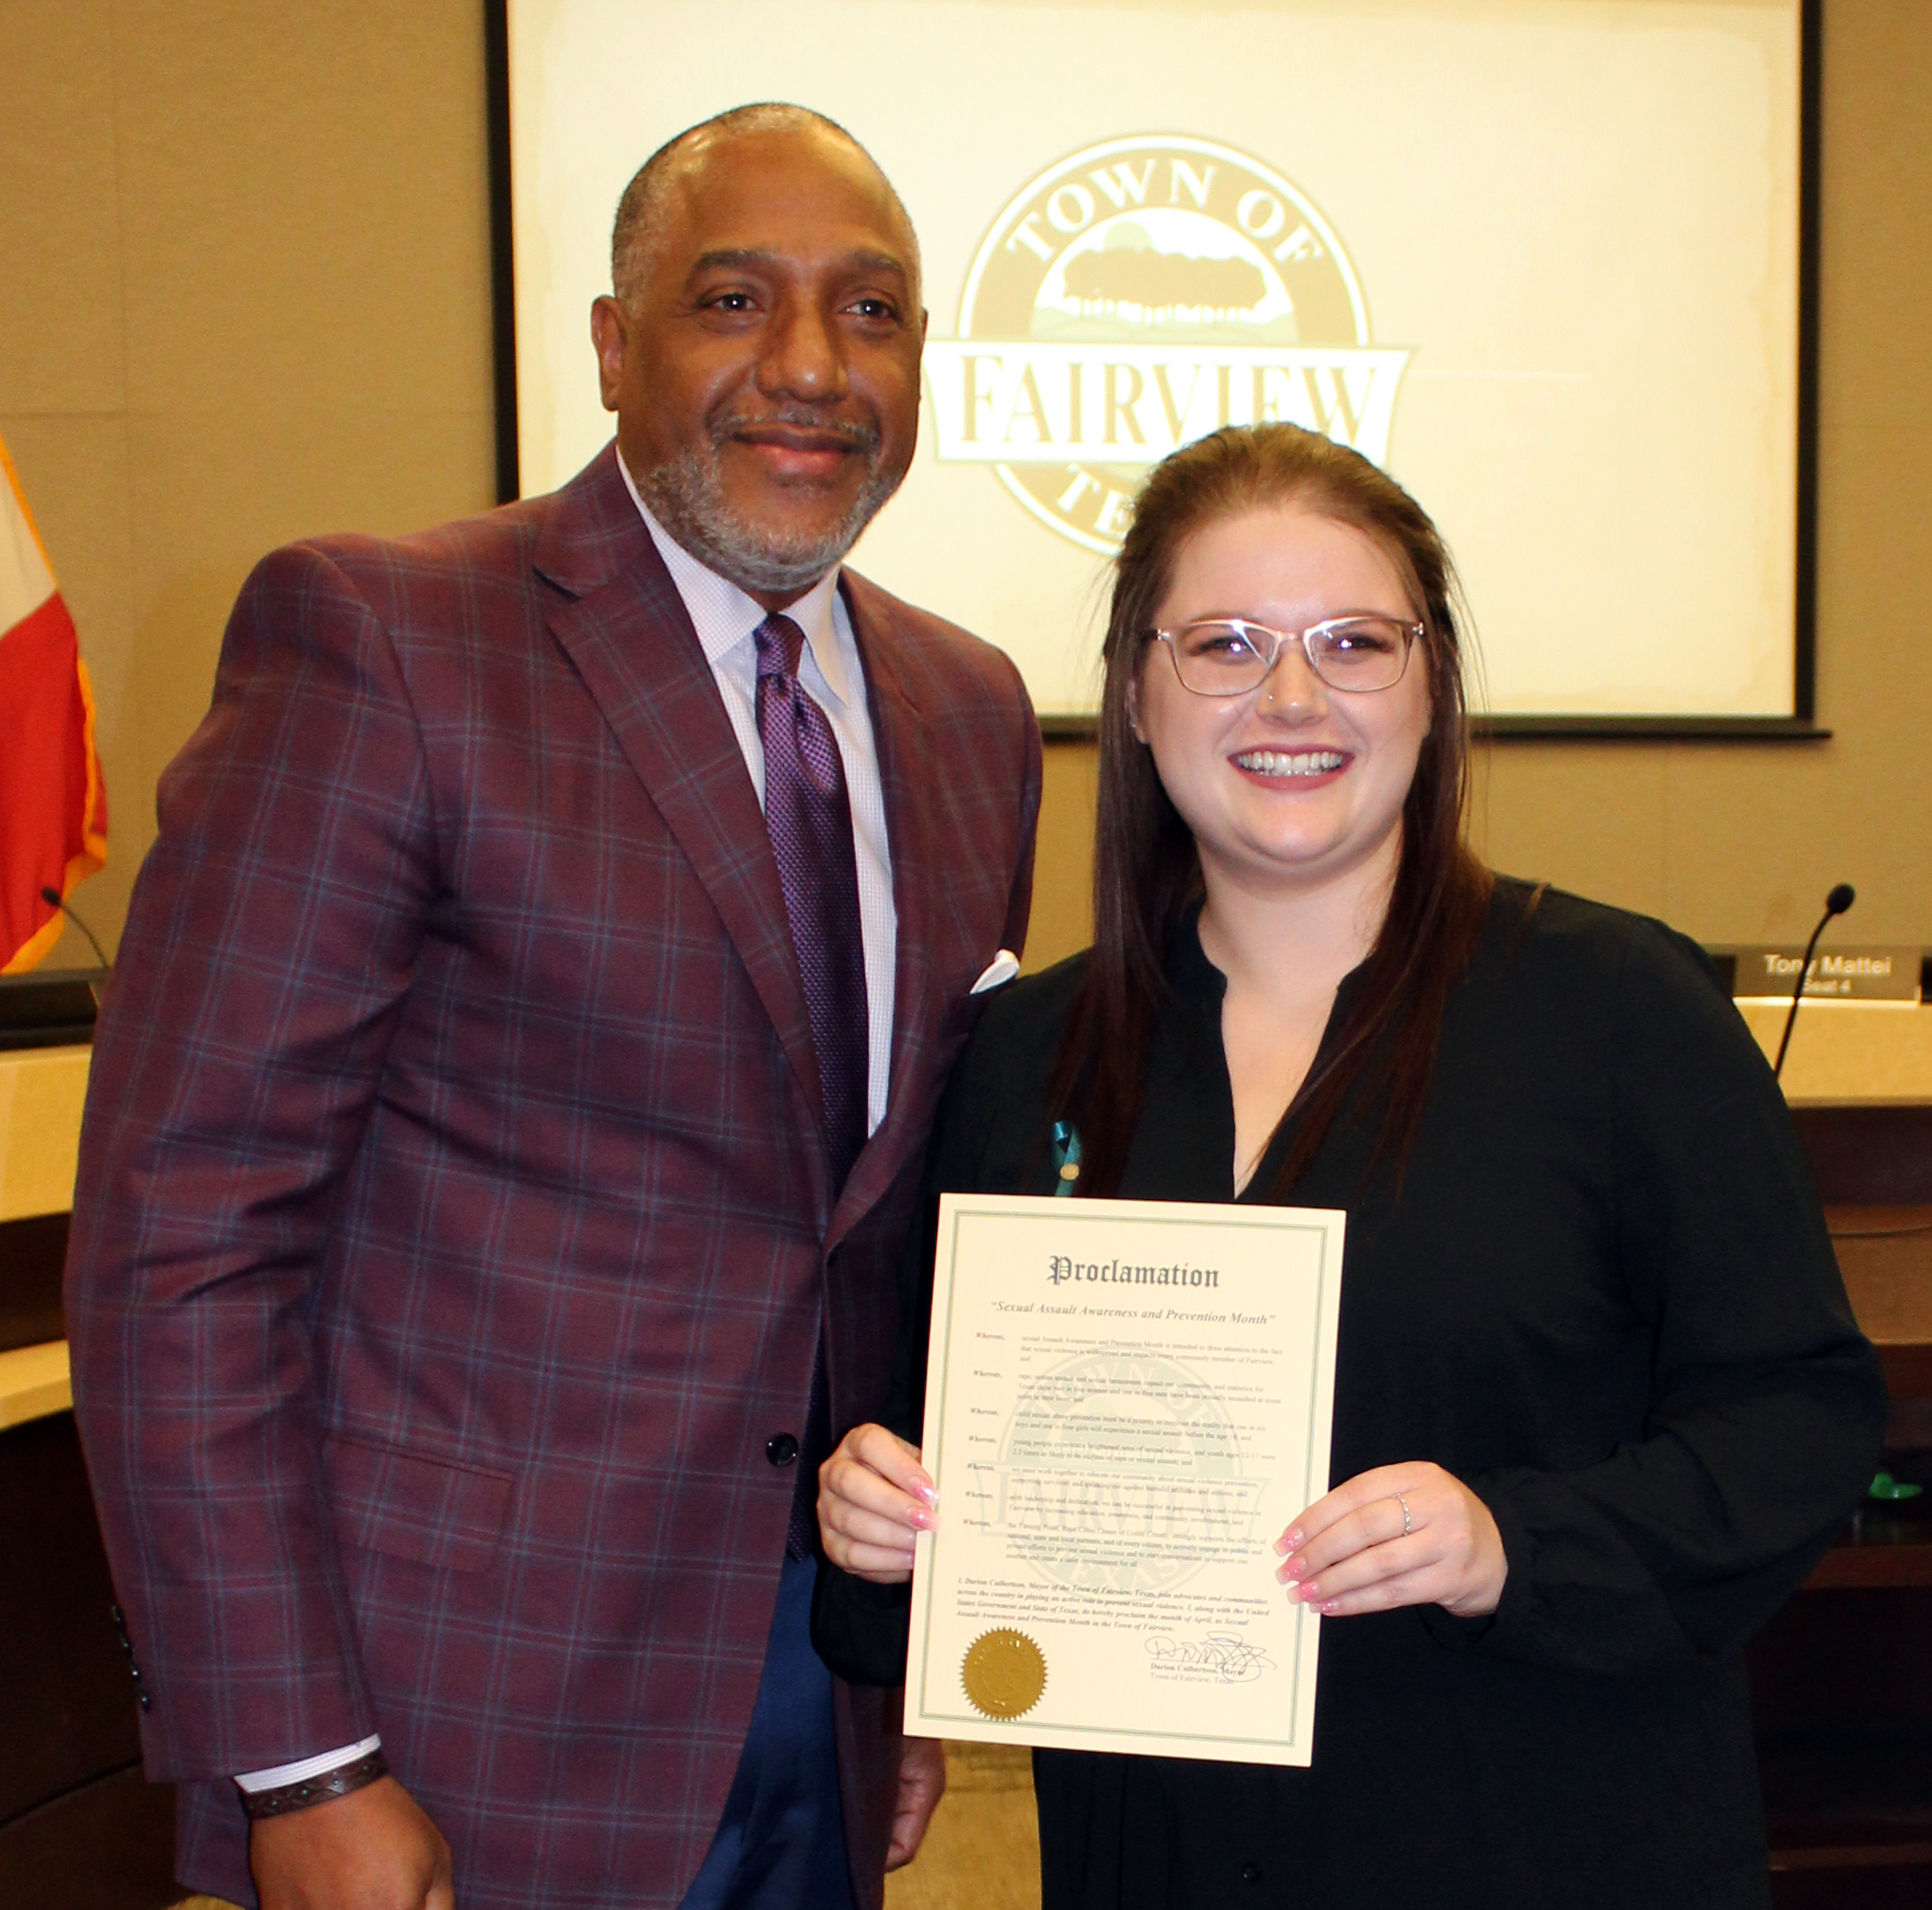 A representative of The Turning Point accepted the proclamation from Mayor Culbertson declaring month of April 2019 as Sexual Assault Awareness Month in the Town of Fairview.